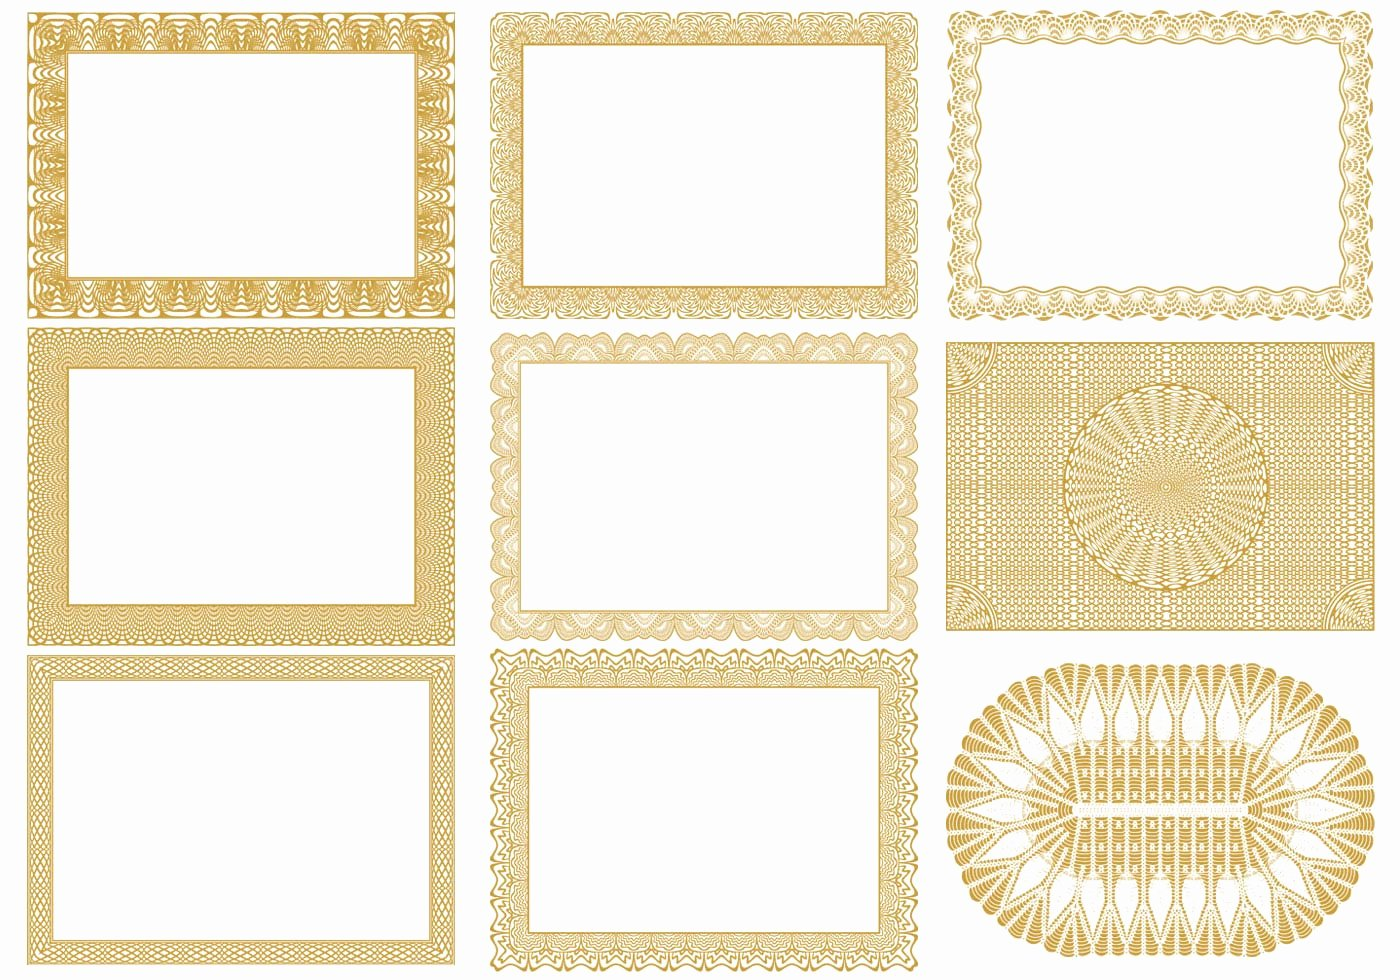 Free Vector Certificate Borders Lovely Certificate Border Vectors Pack Download Free Vector Art